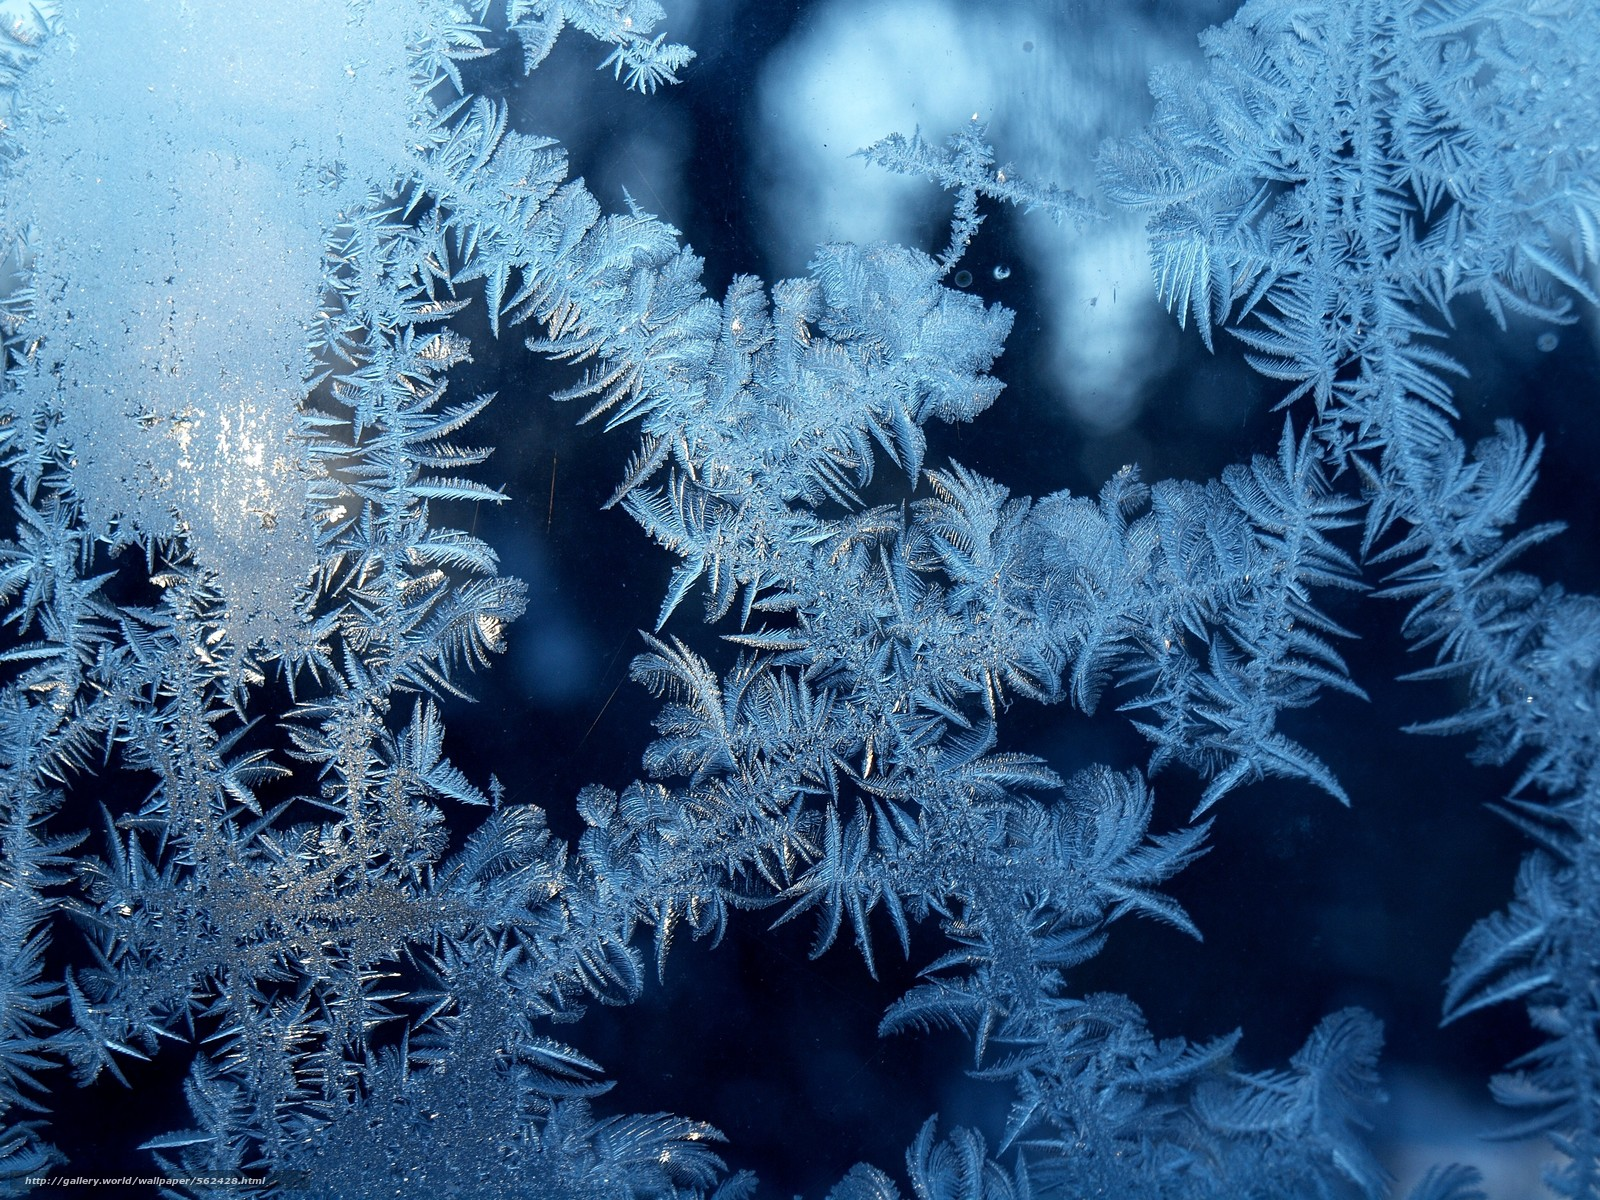 frost on glass wallpapers - photo #18